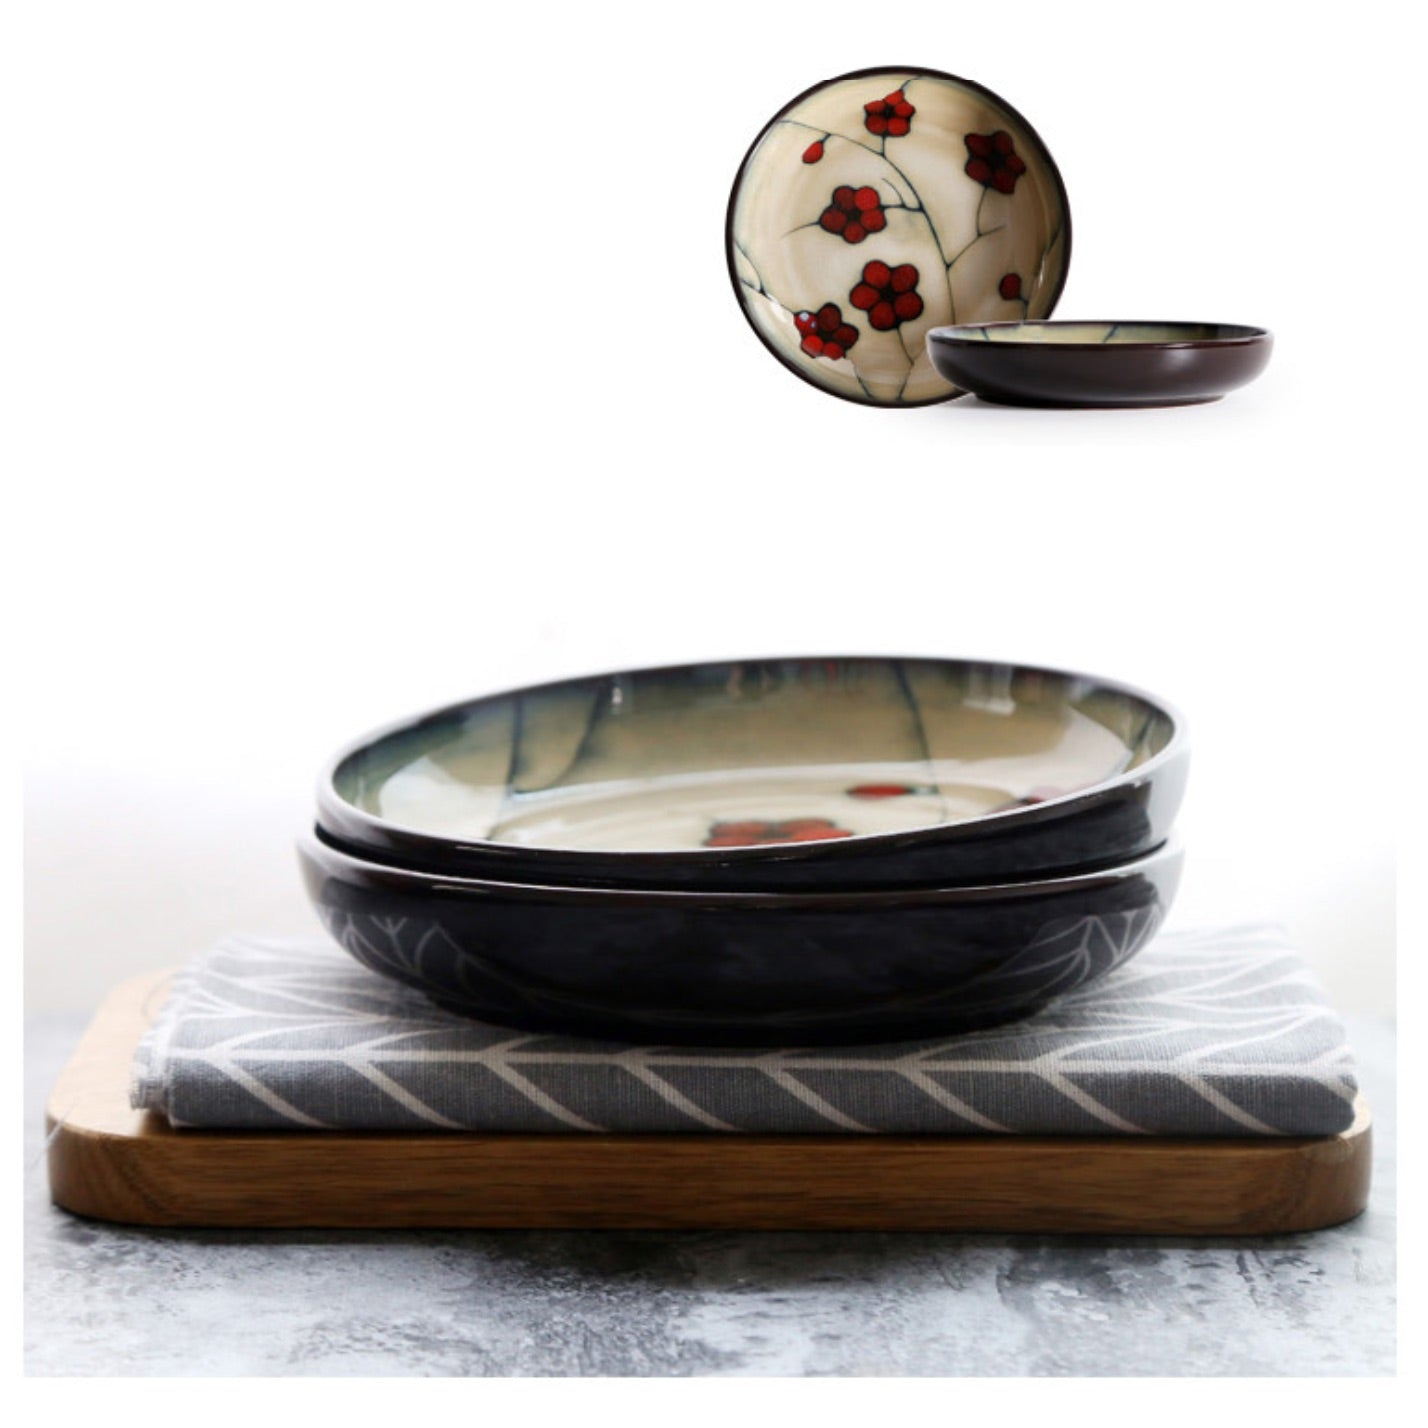 Japanese Red Plum Porcelain Tableware Japan On-Glaze Ceramic Dinnerware Dinner Sets JPN Style G